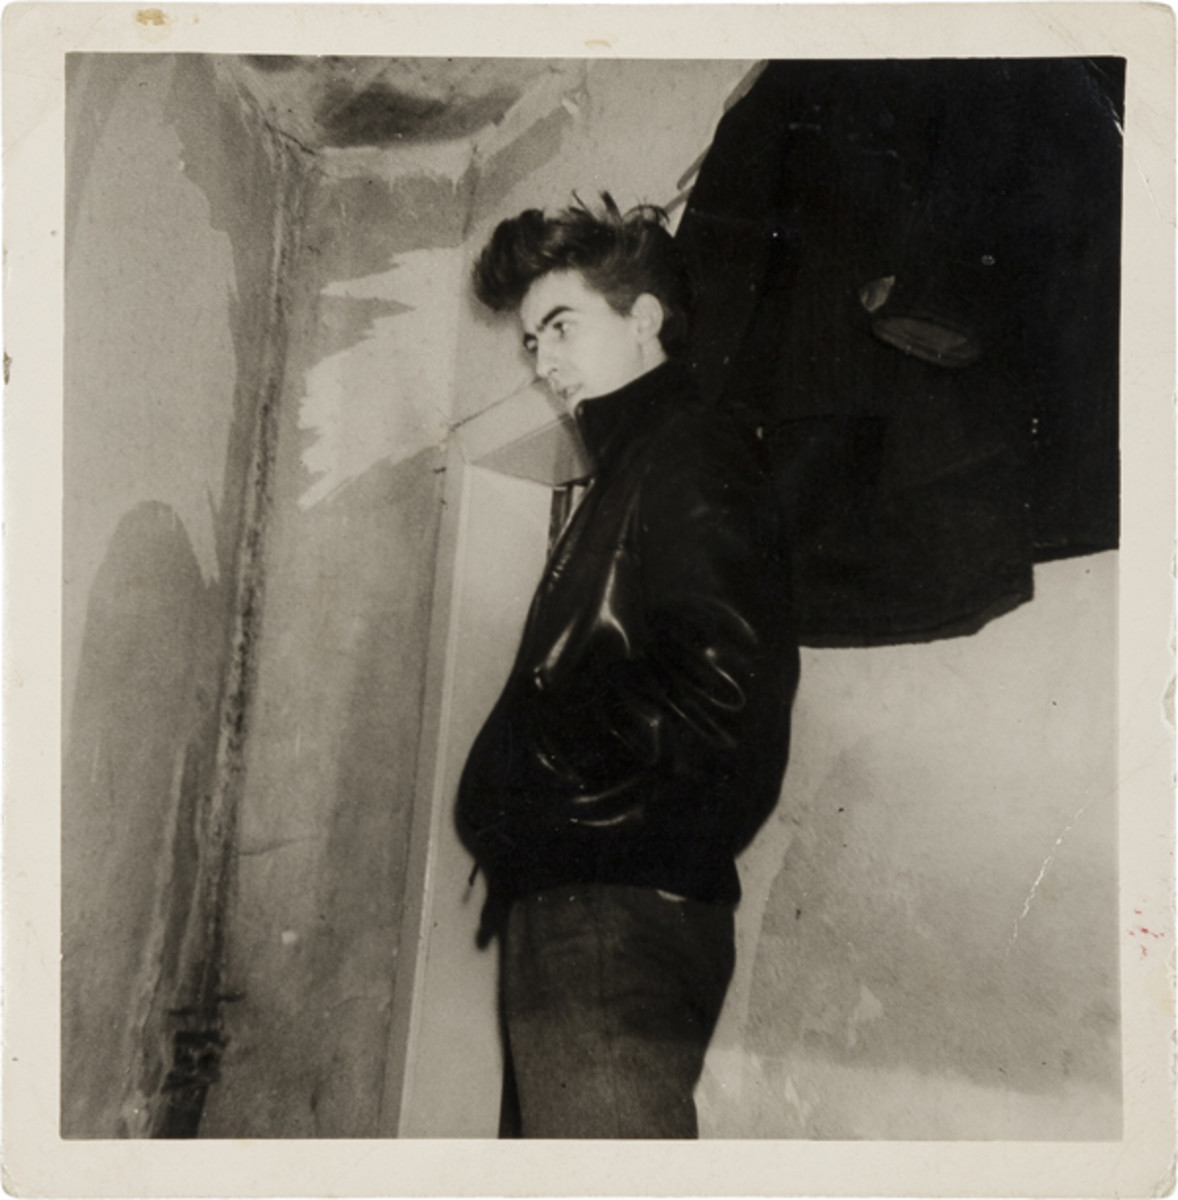 A vintage snapshot of 17-year-old George Harrison modeling his first leather jacket, taken in 1960 in Hamburg shortly before his deportation from Germany for being underage (est. $3,000+). Image courtesy of Heritage Auctions.